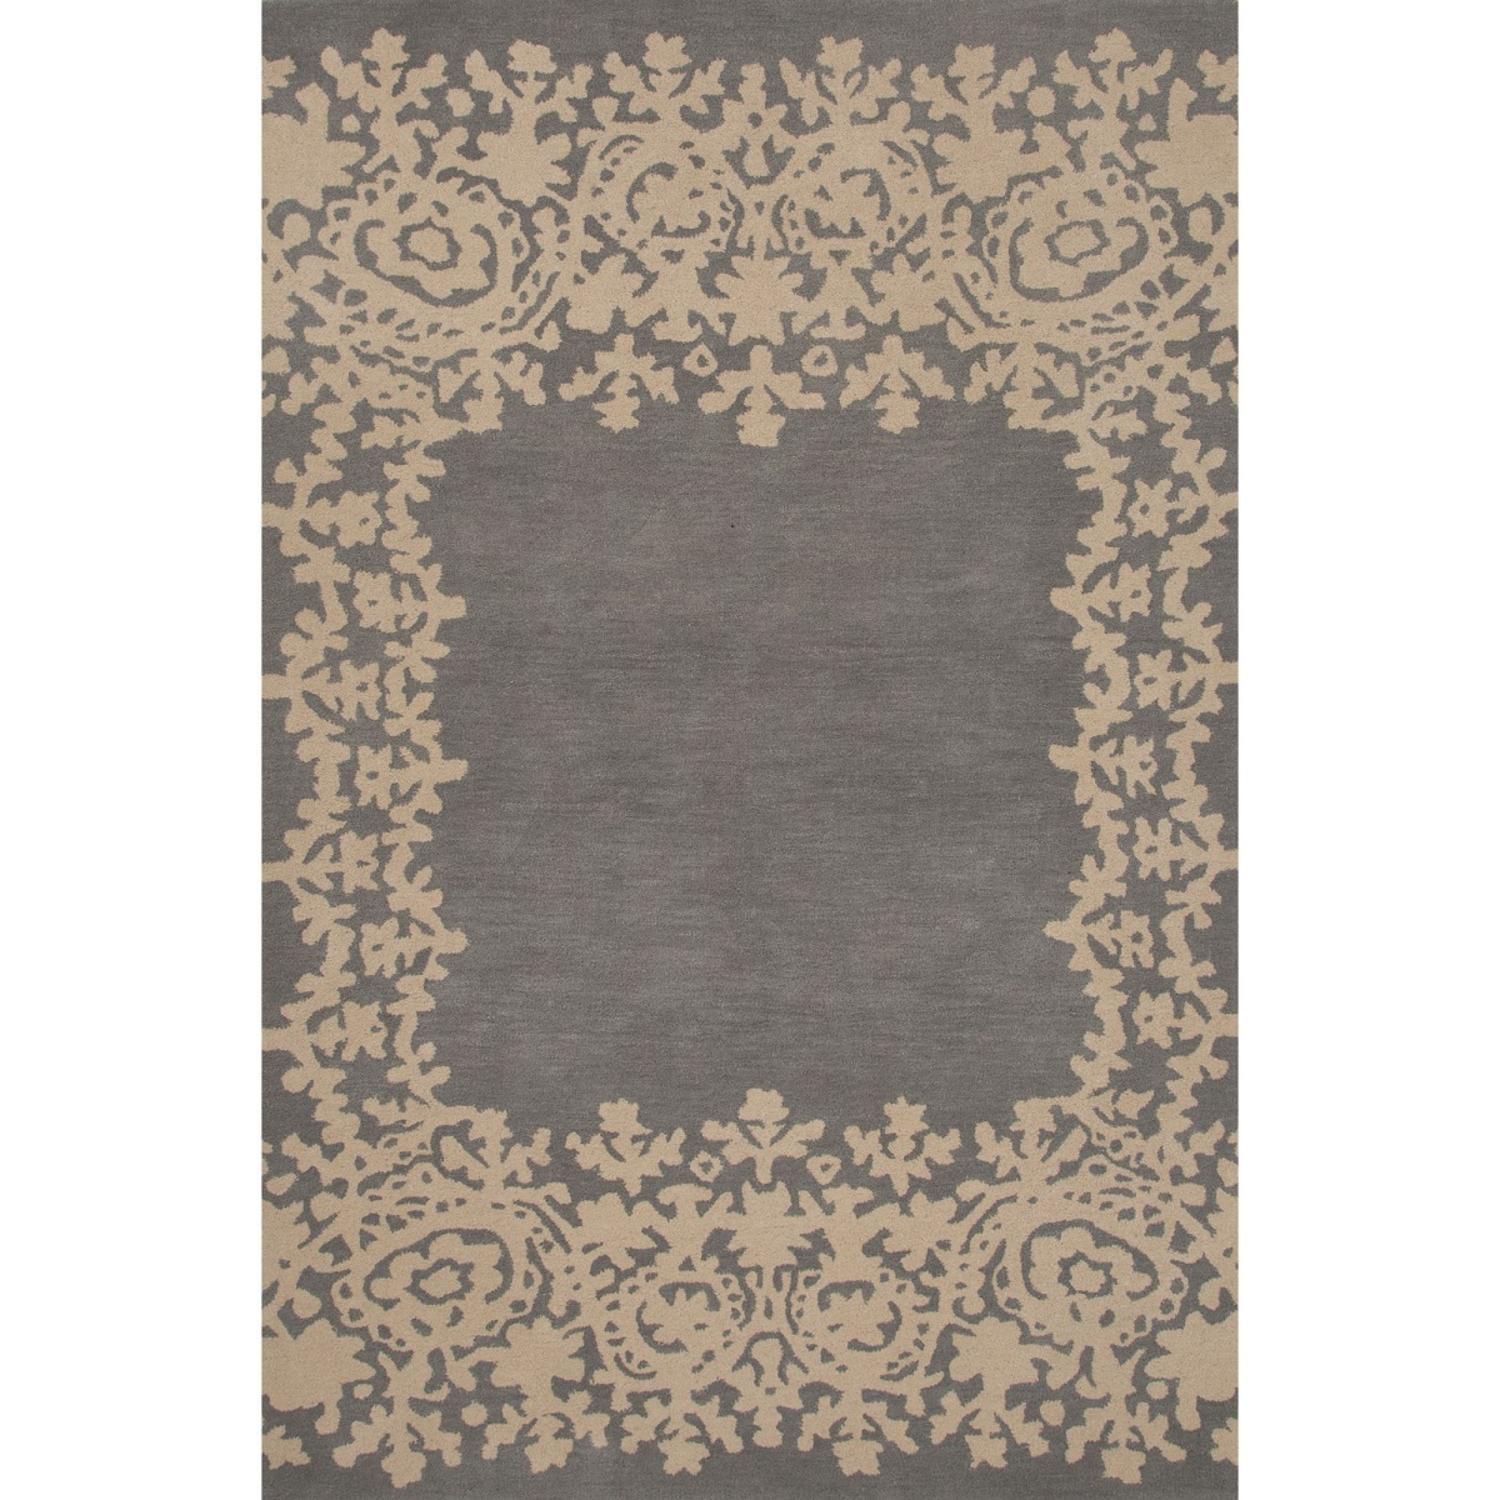 2' x 3' Stone Gray and Ash Gray Tisza Modern Hand Tufted Wool Area Throw Rug